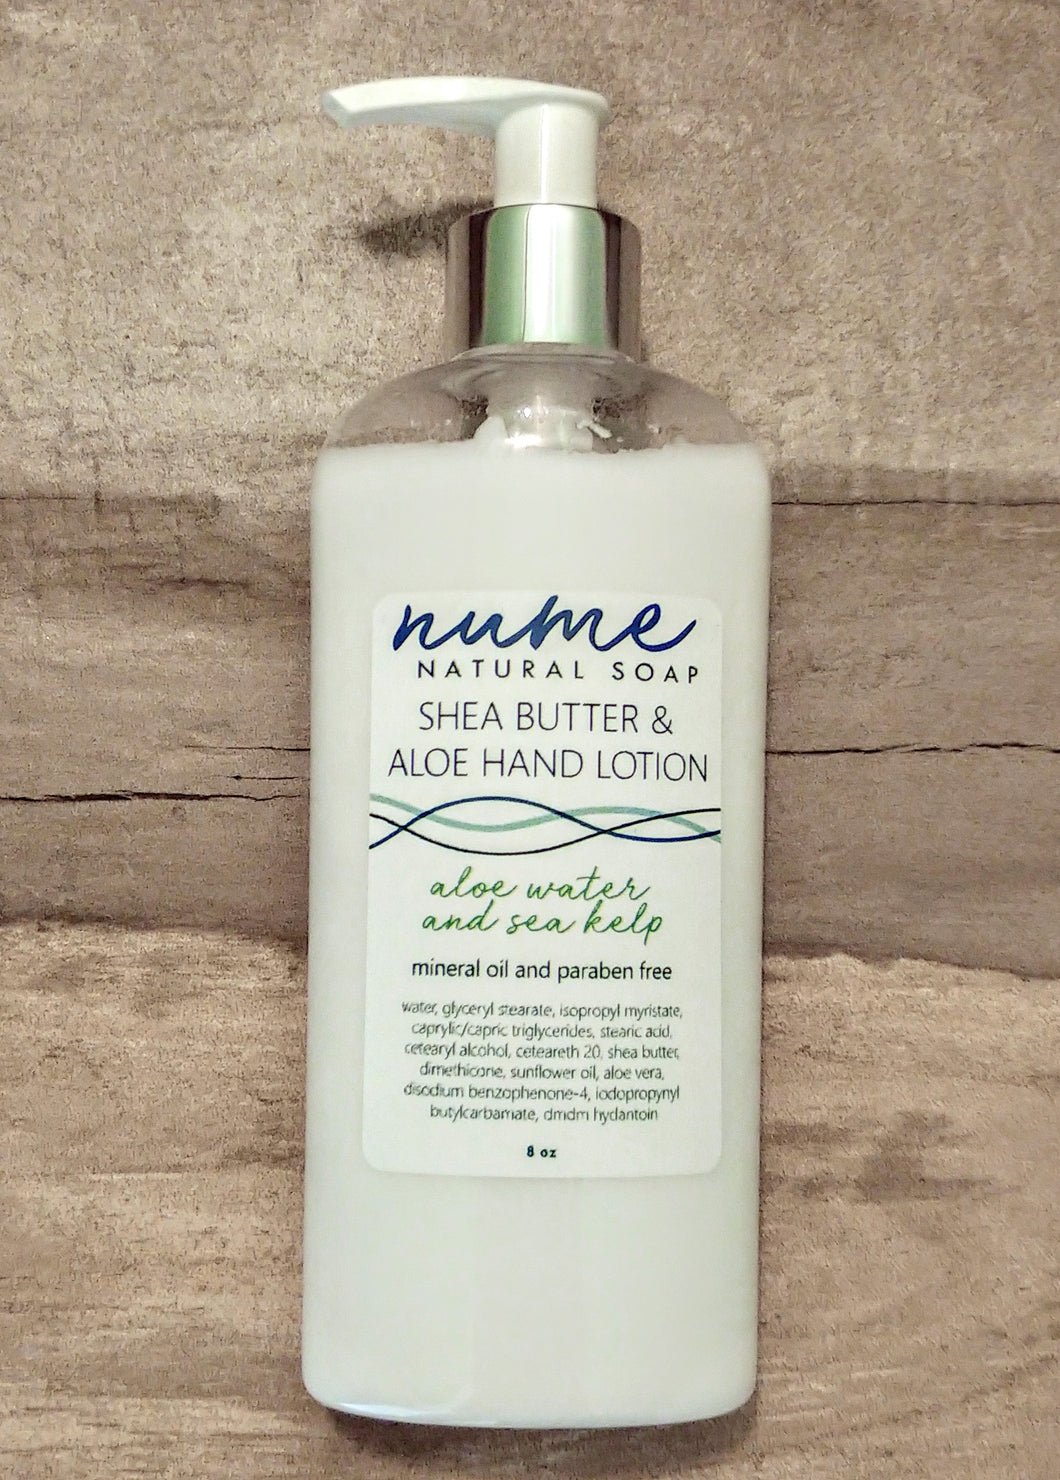 Shea Butter & Aloe Hand Lotion